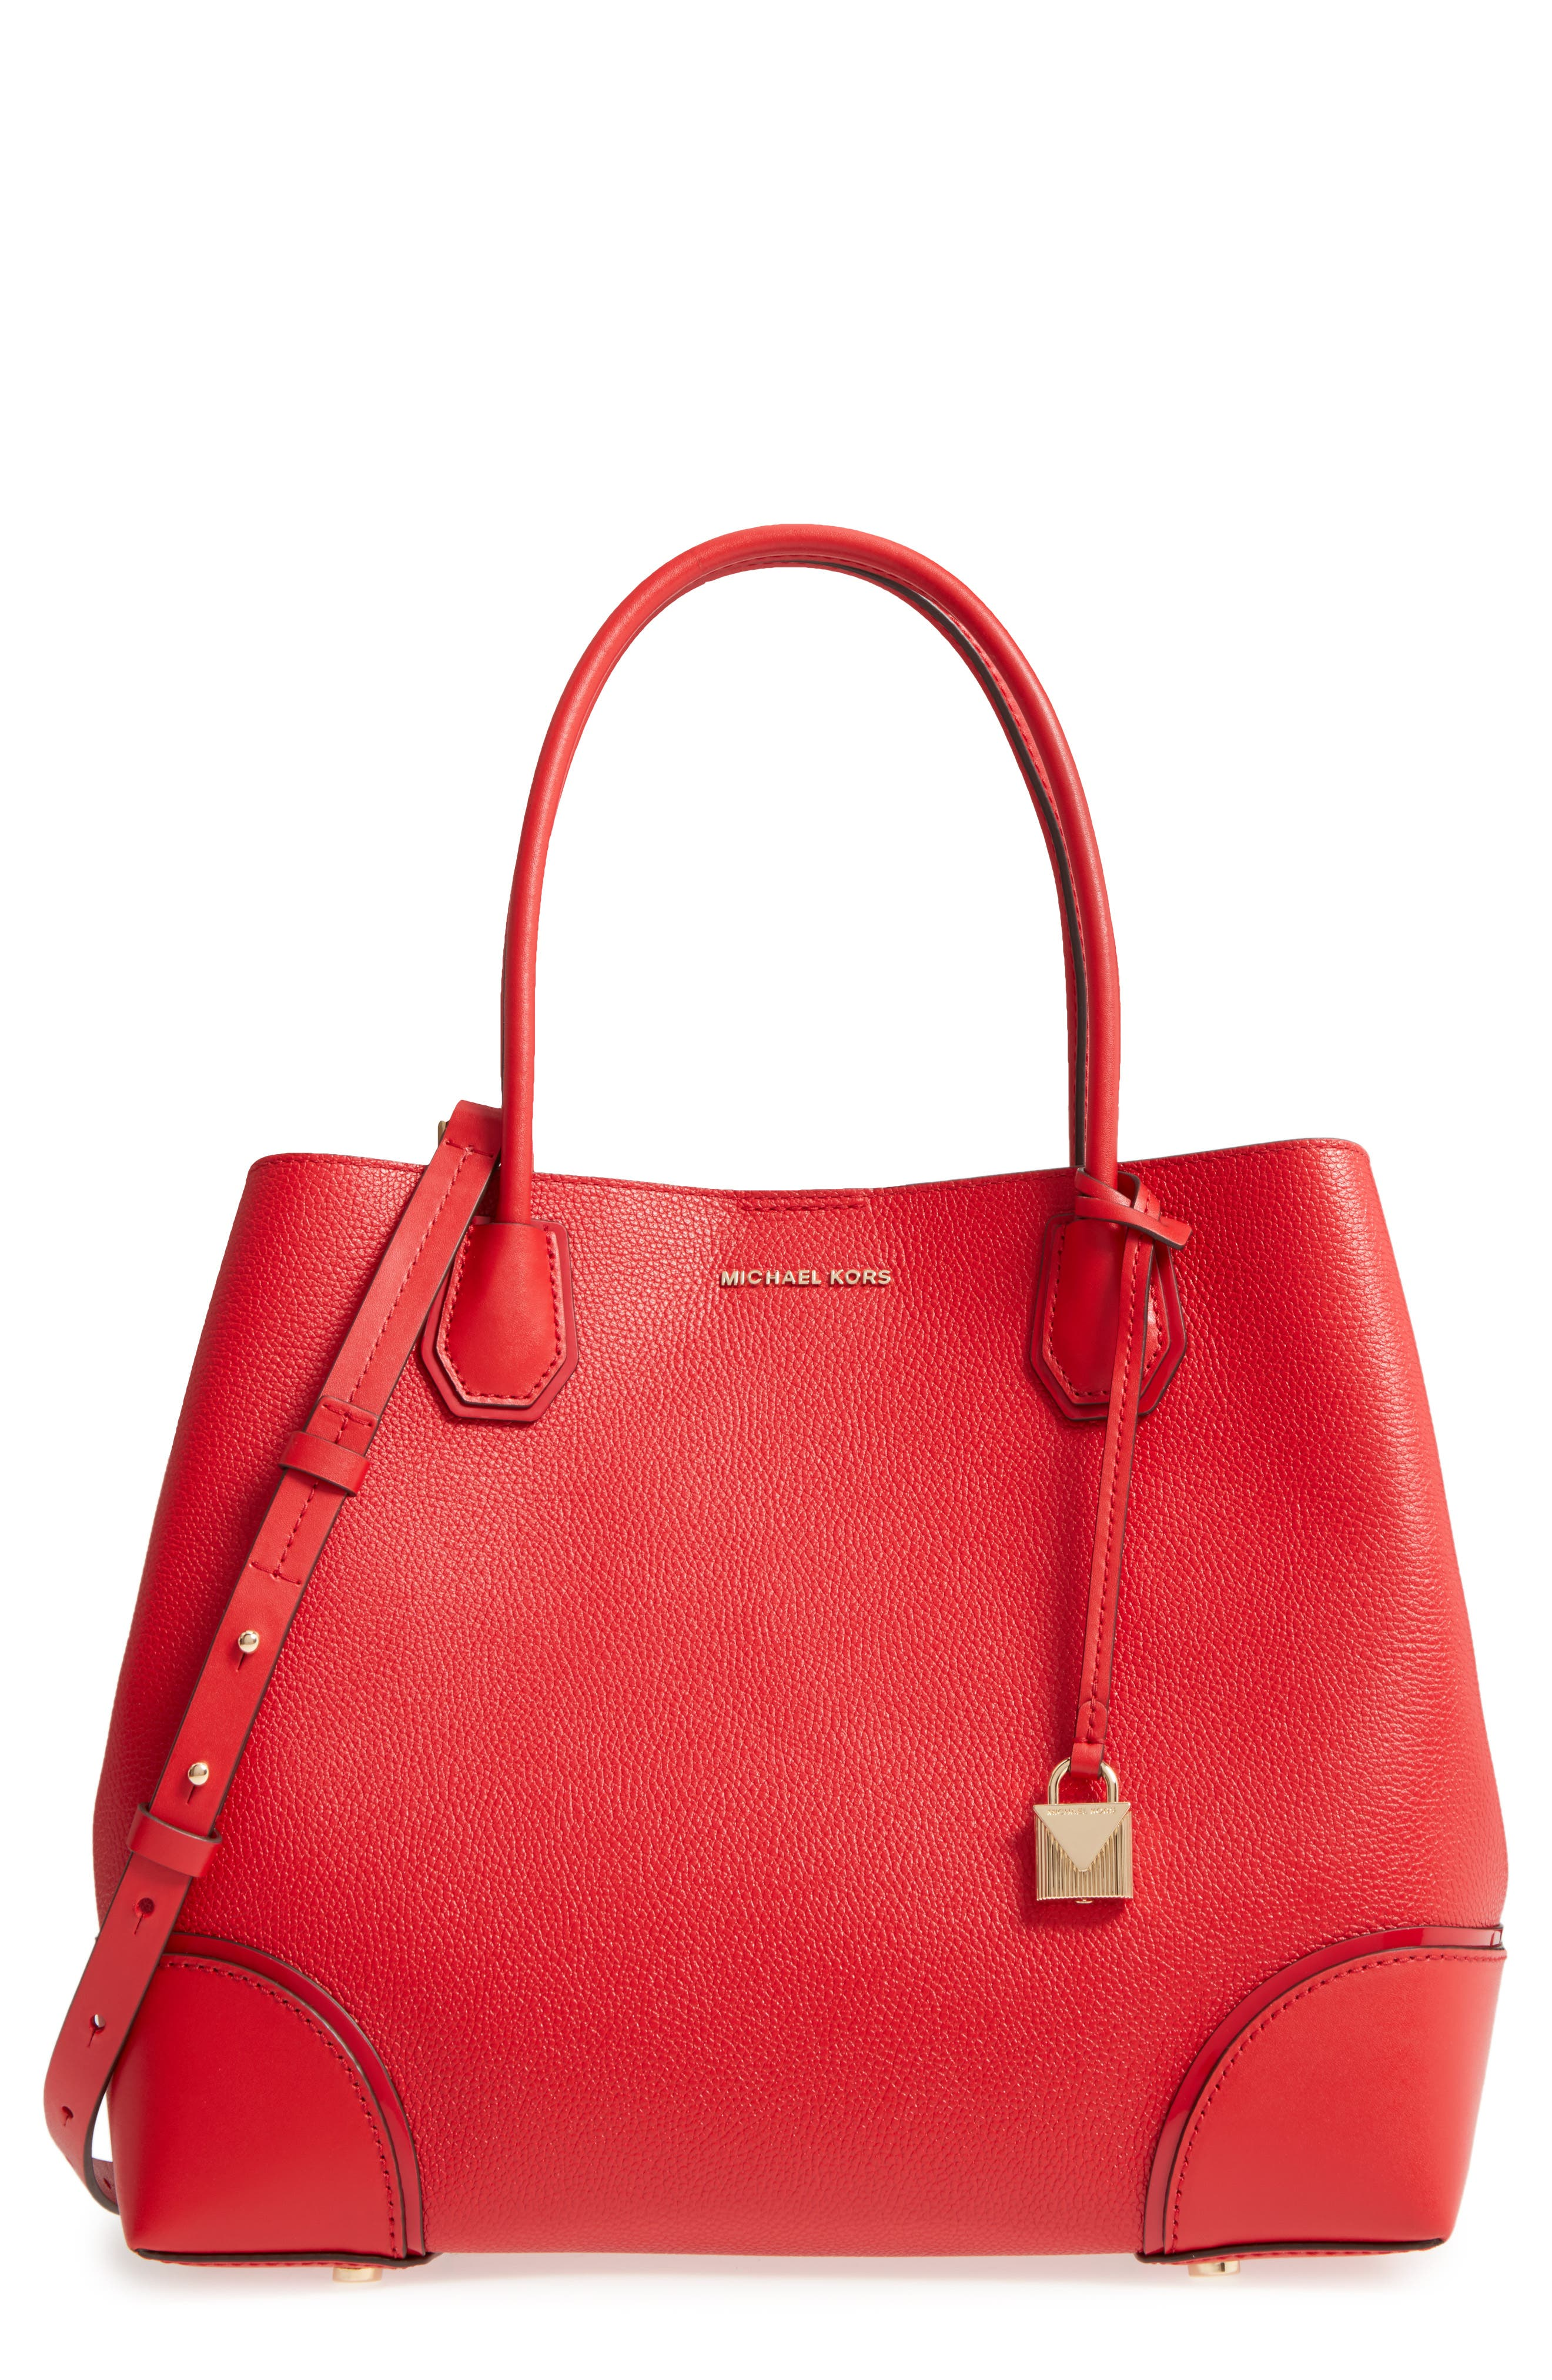 MICHAEL Michael Kors Large Mercer Leather Tote,                         Main,                         color, Bright Red